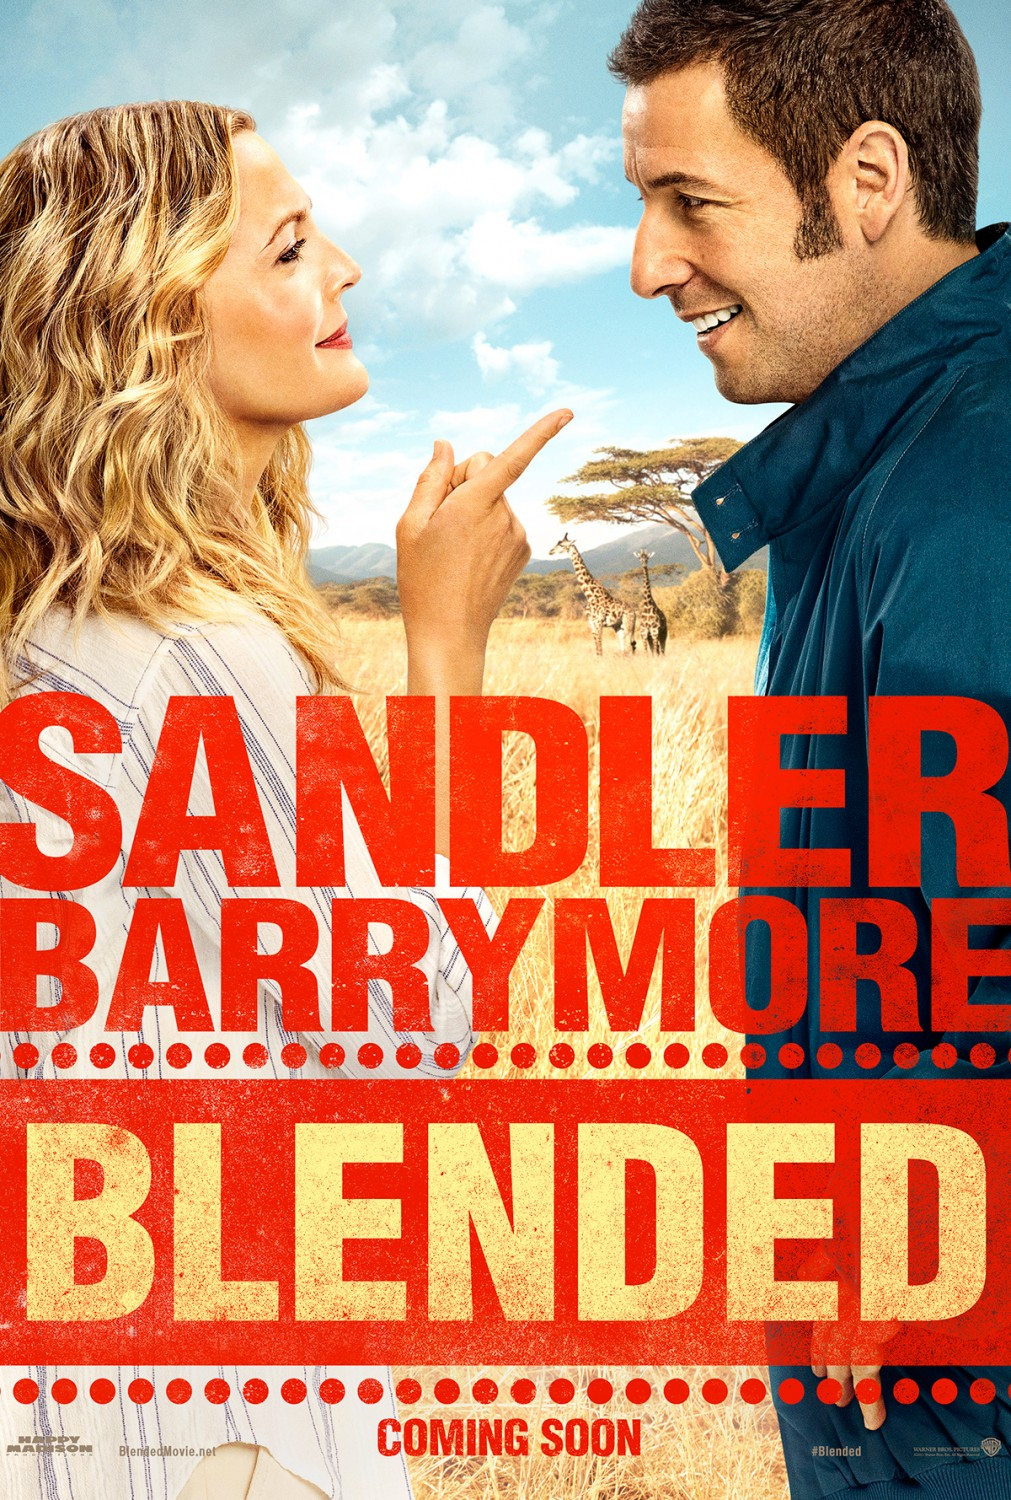 Blended-Official Poster Banner PROMO POSTER XLG-18DEZEMBRO2013